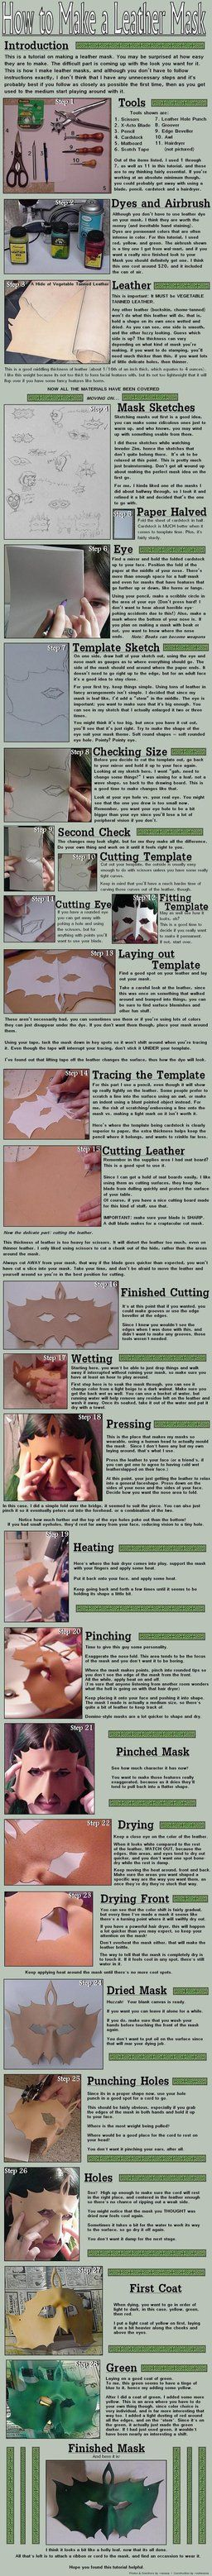 how to make a leather mask tutorial